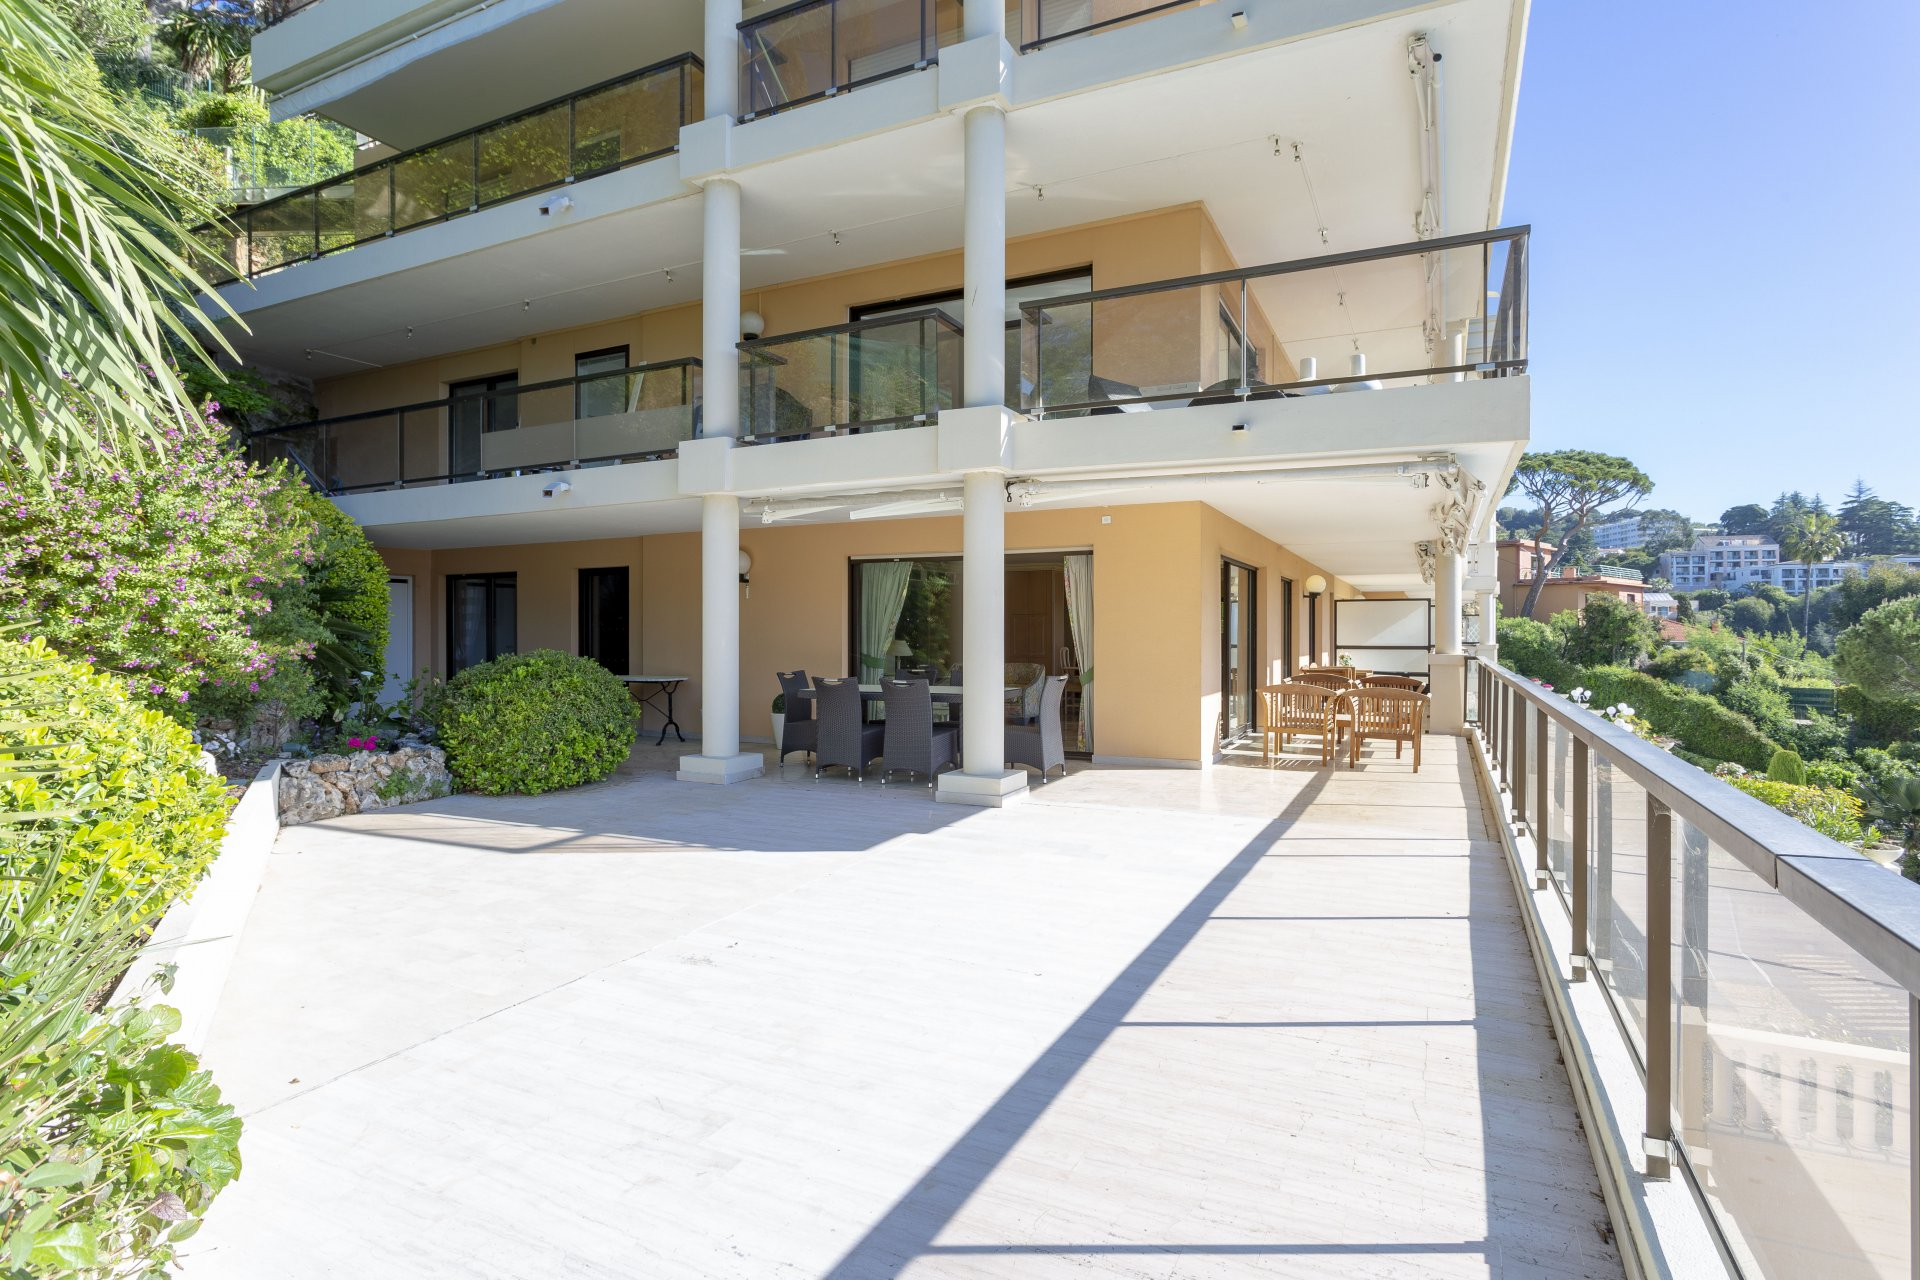 CANNES CROIX DE GARDES - NICE 3-BEDROOM APARTMENT WITH LARGE TERRACE